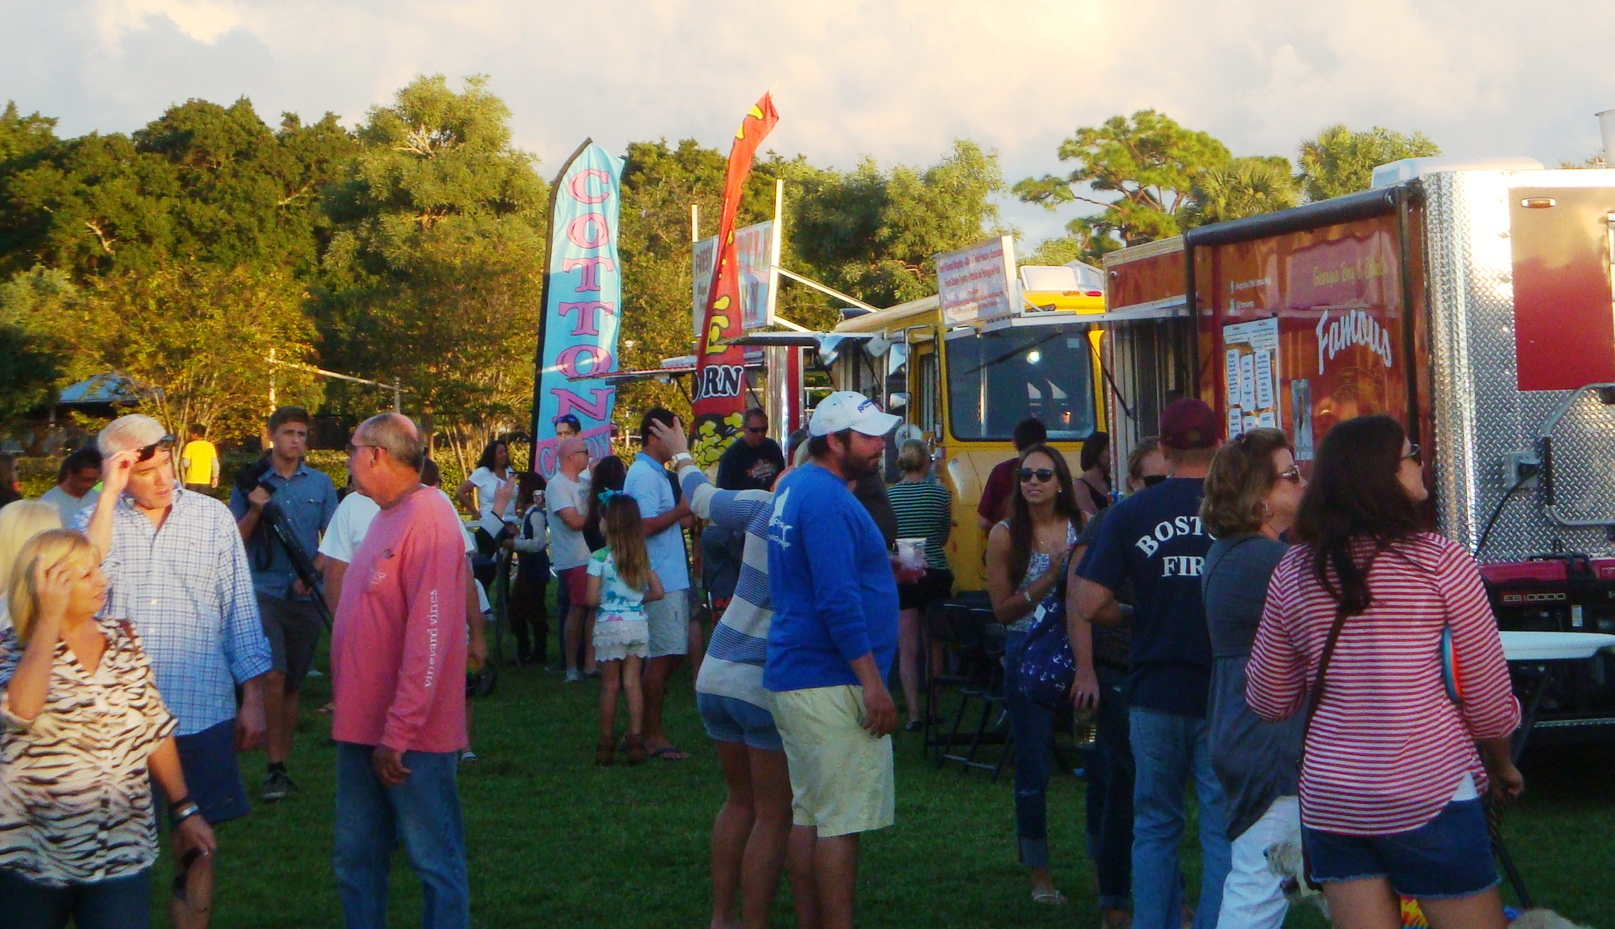 Crowd walking around food trucks